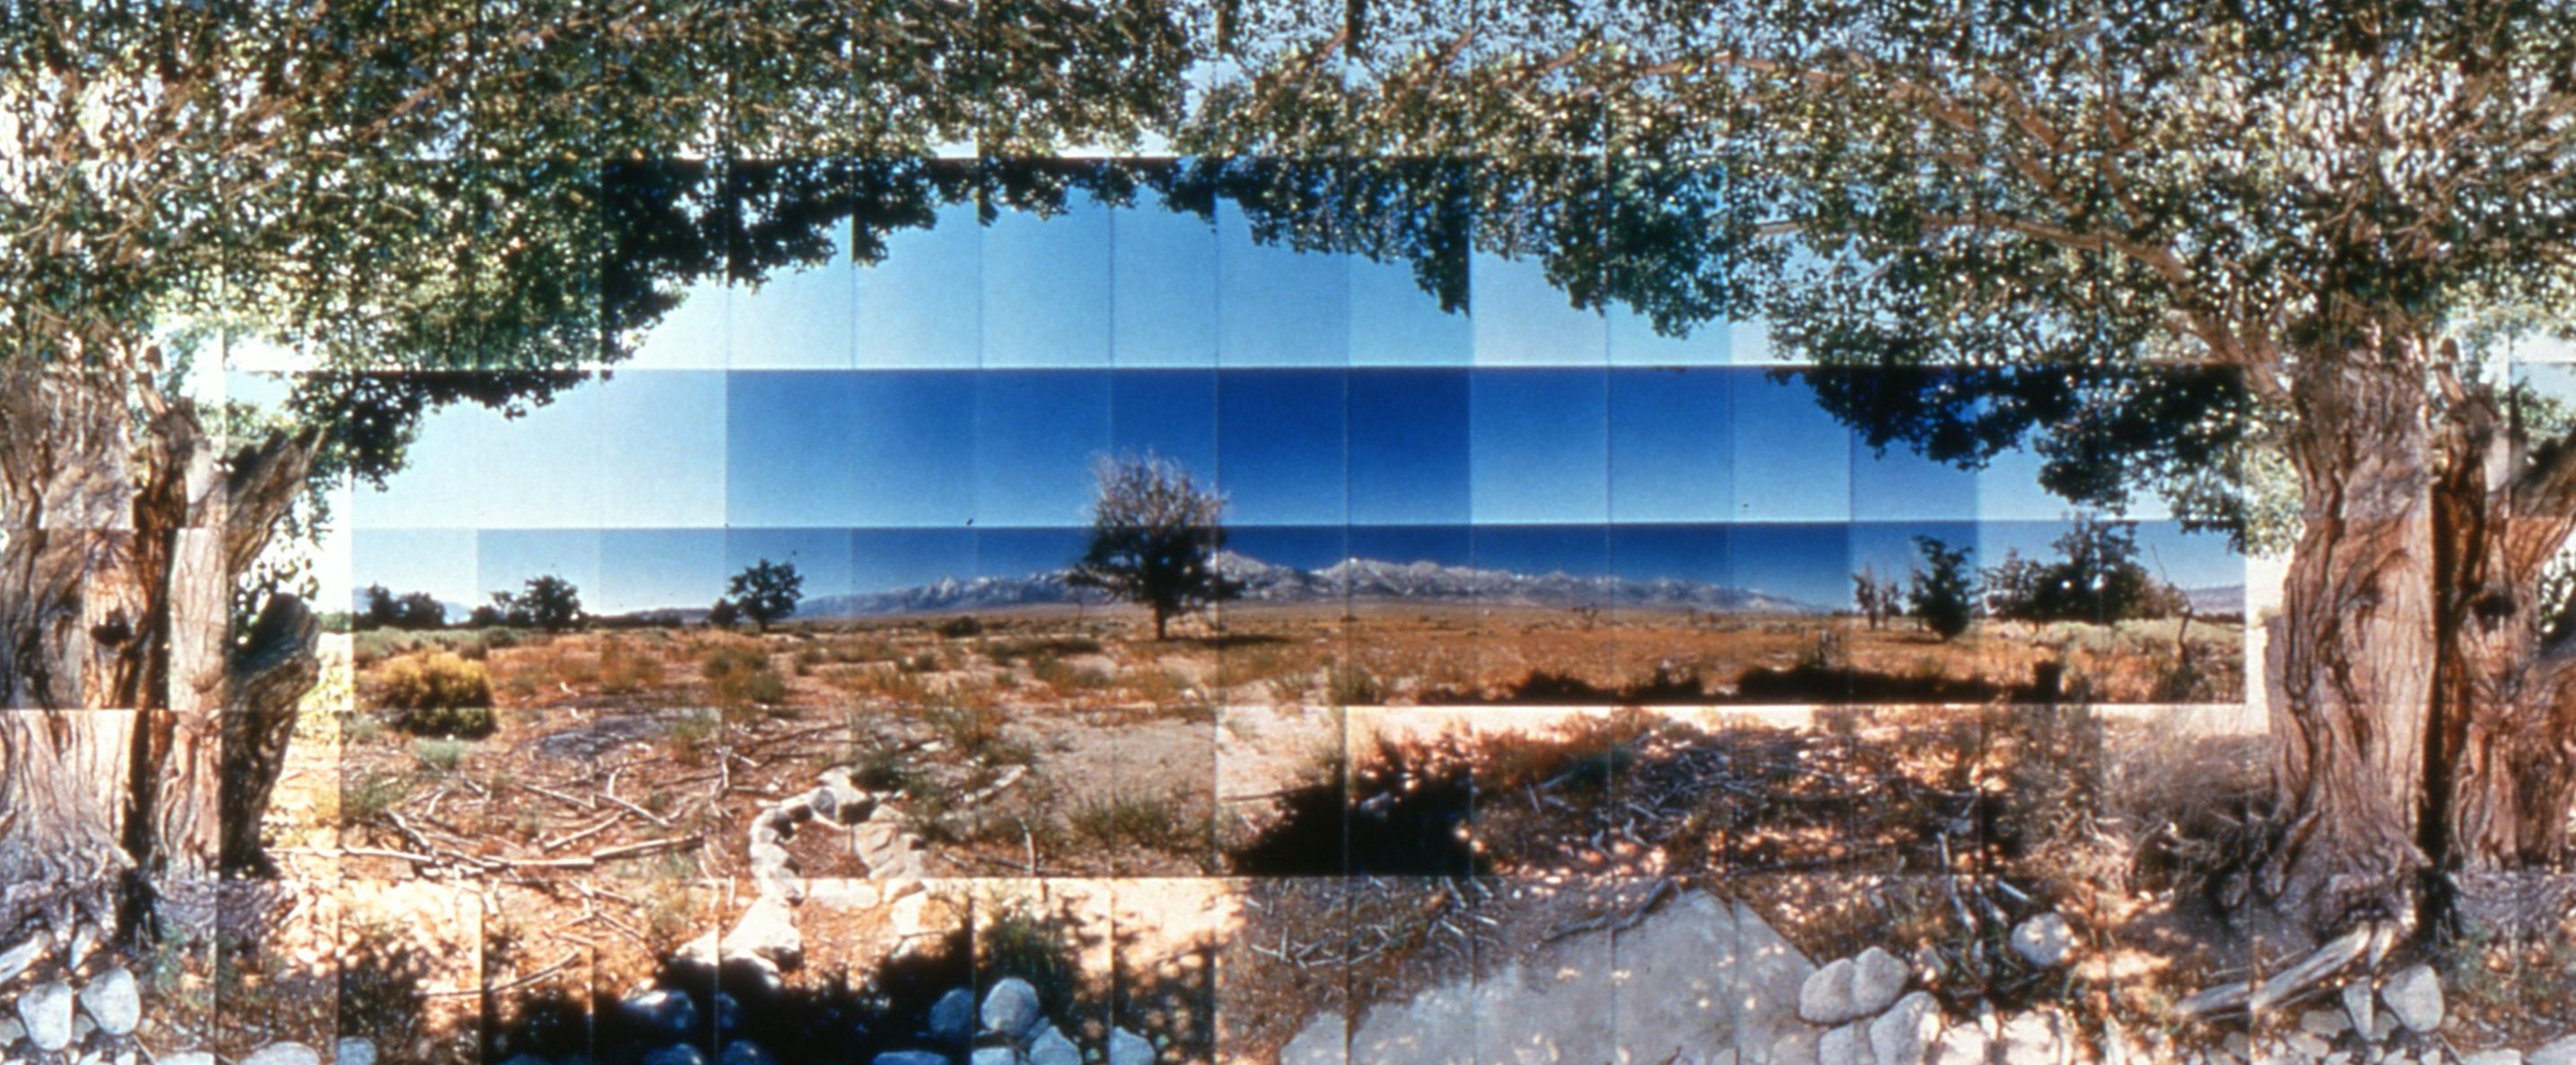 Picture of Manzanar Relocation Camp, Tree View, Inyo, California, by Dr. Masumi Hayashi